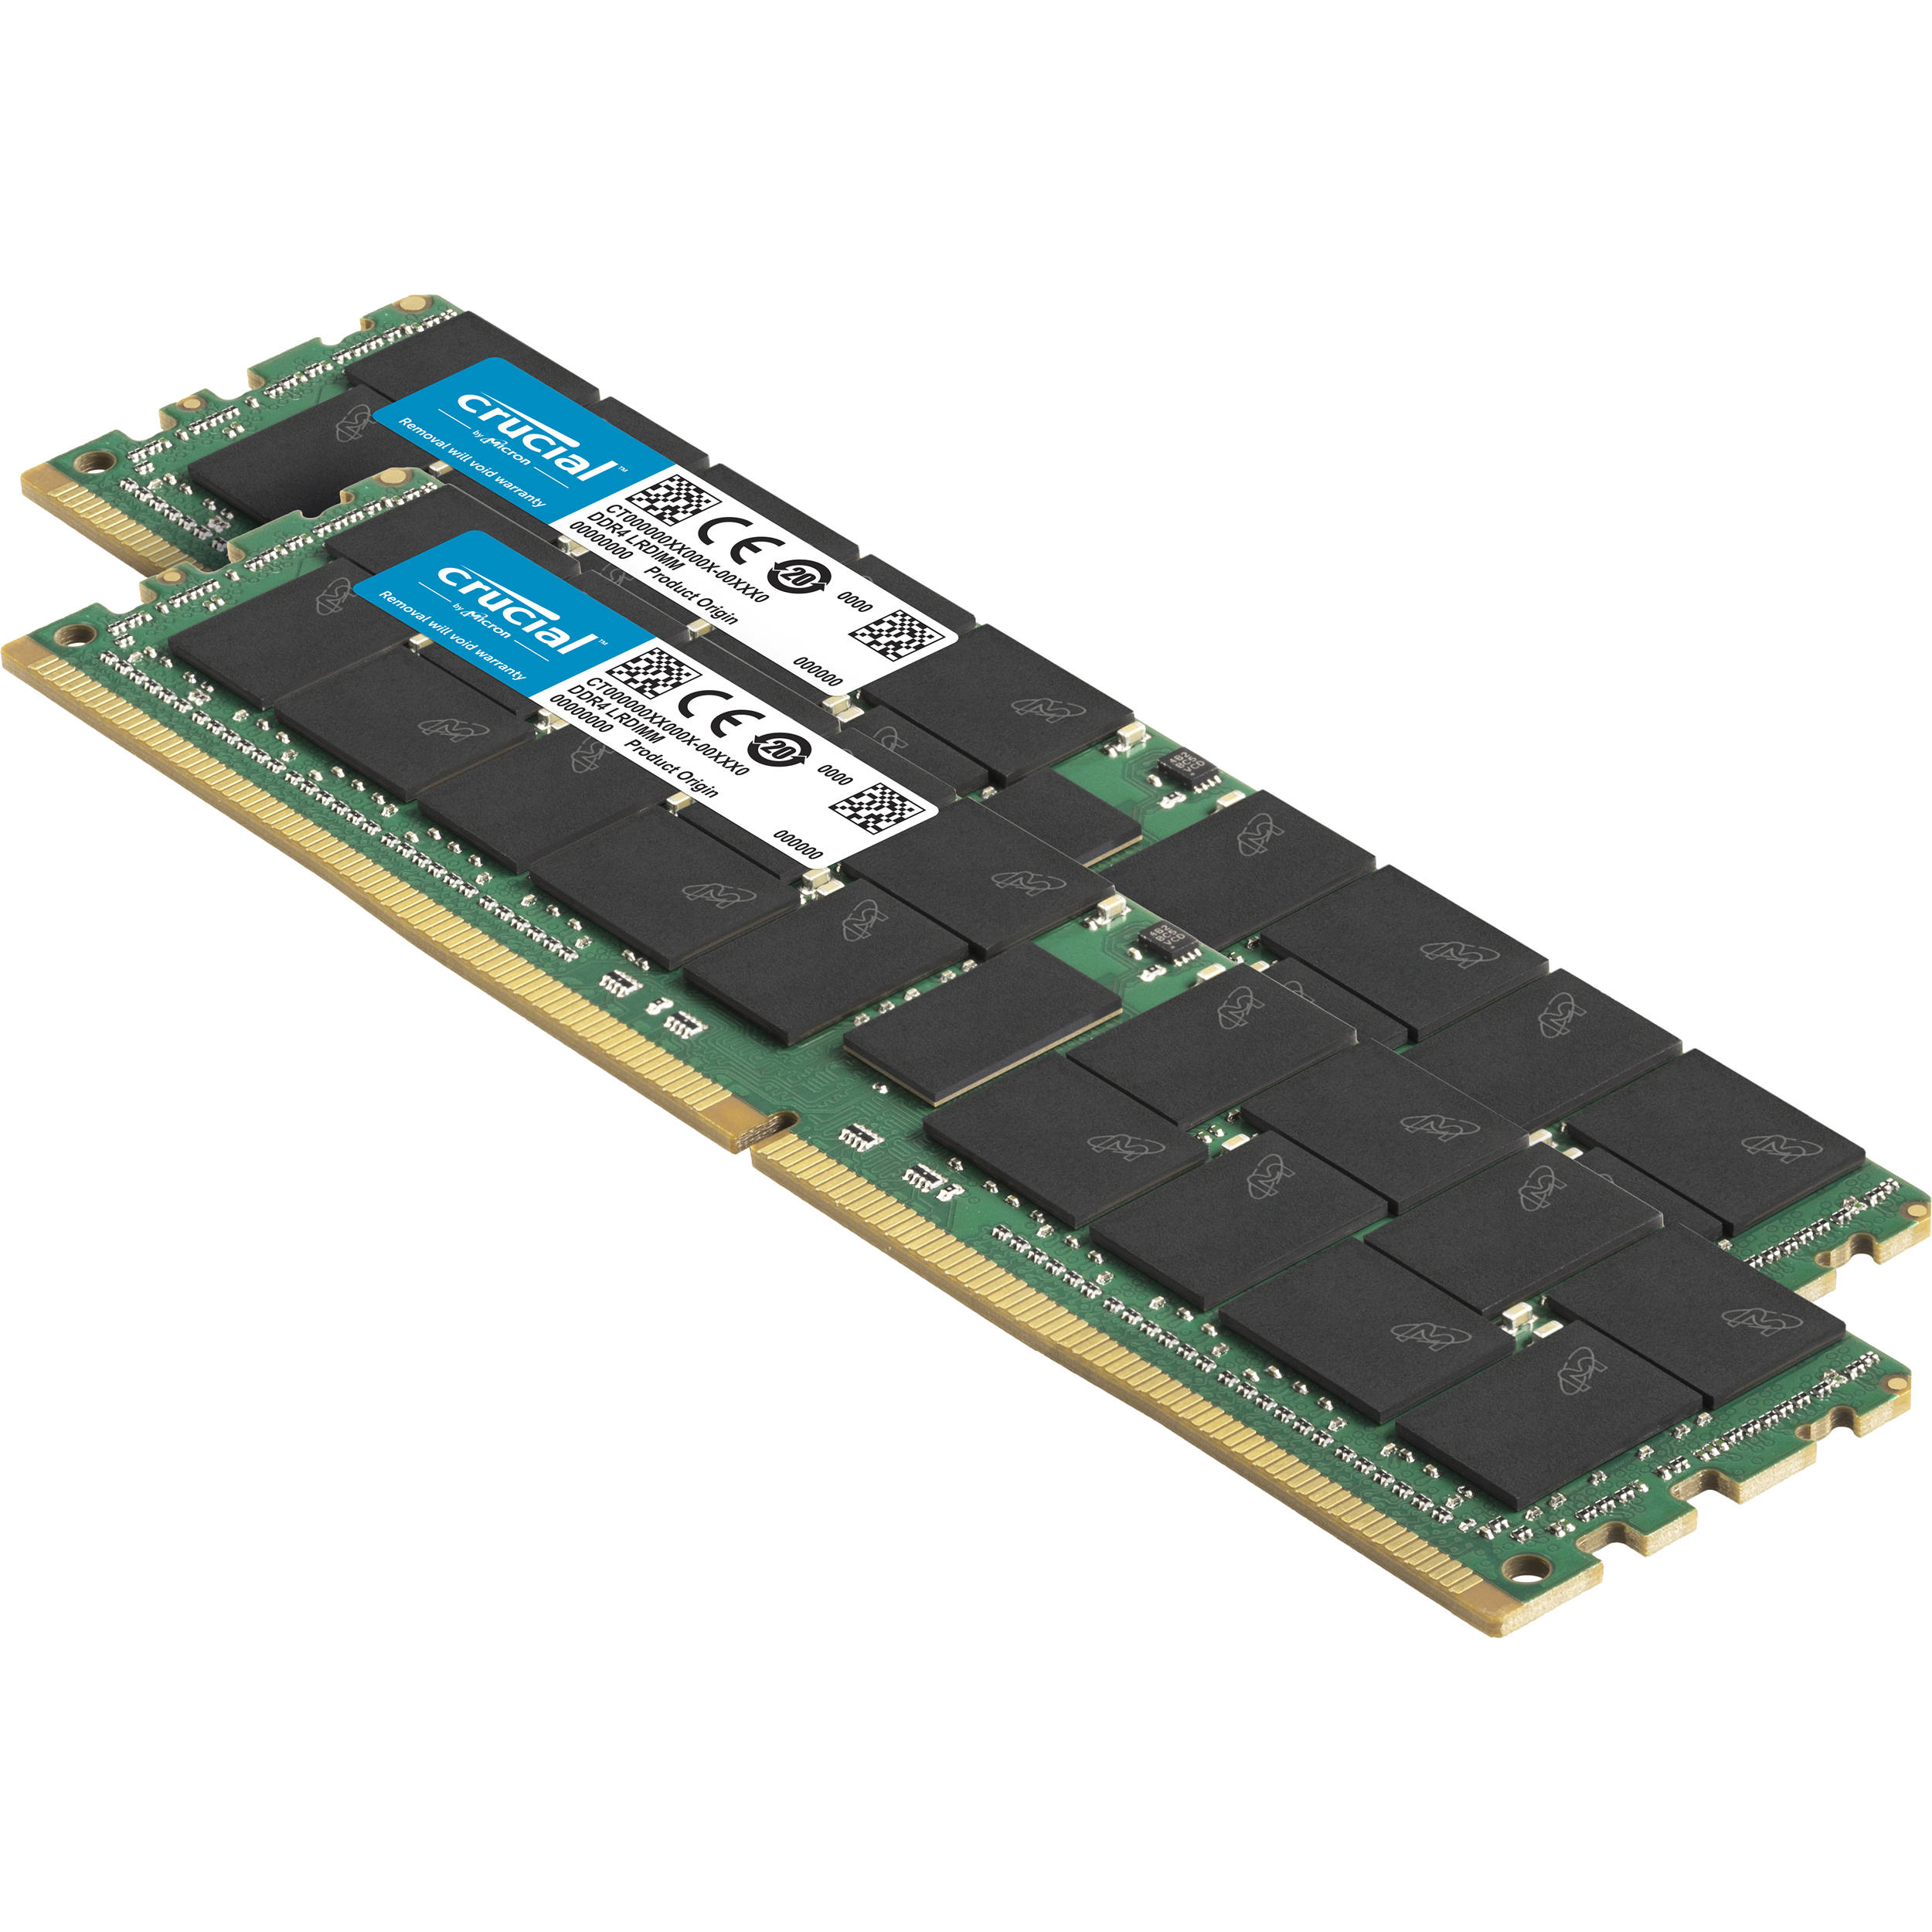 Crucial 128GB DDR4 2666 MHz LR-DIMM Memory Module CT128G4ZFE426S